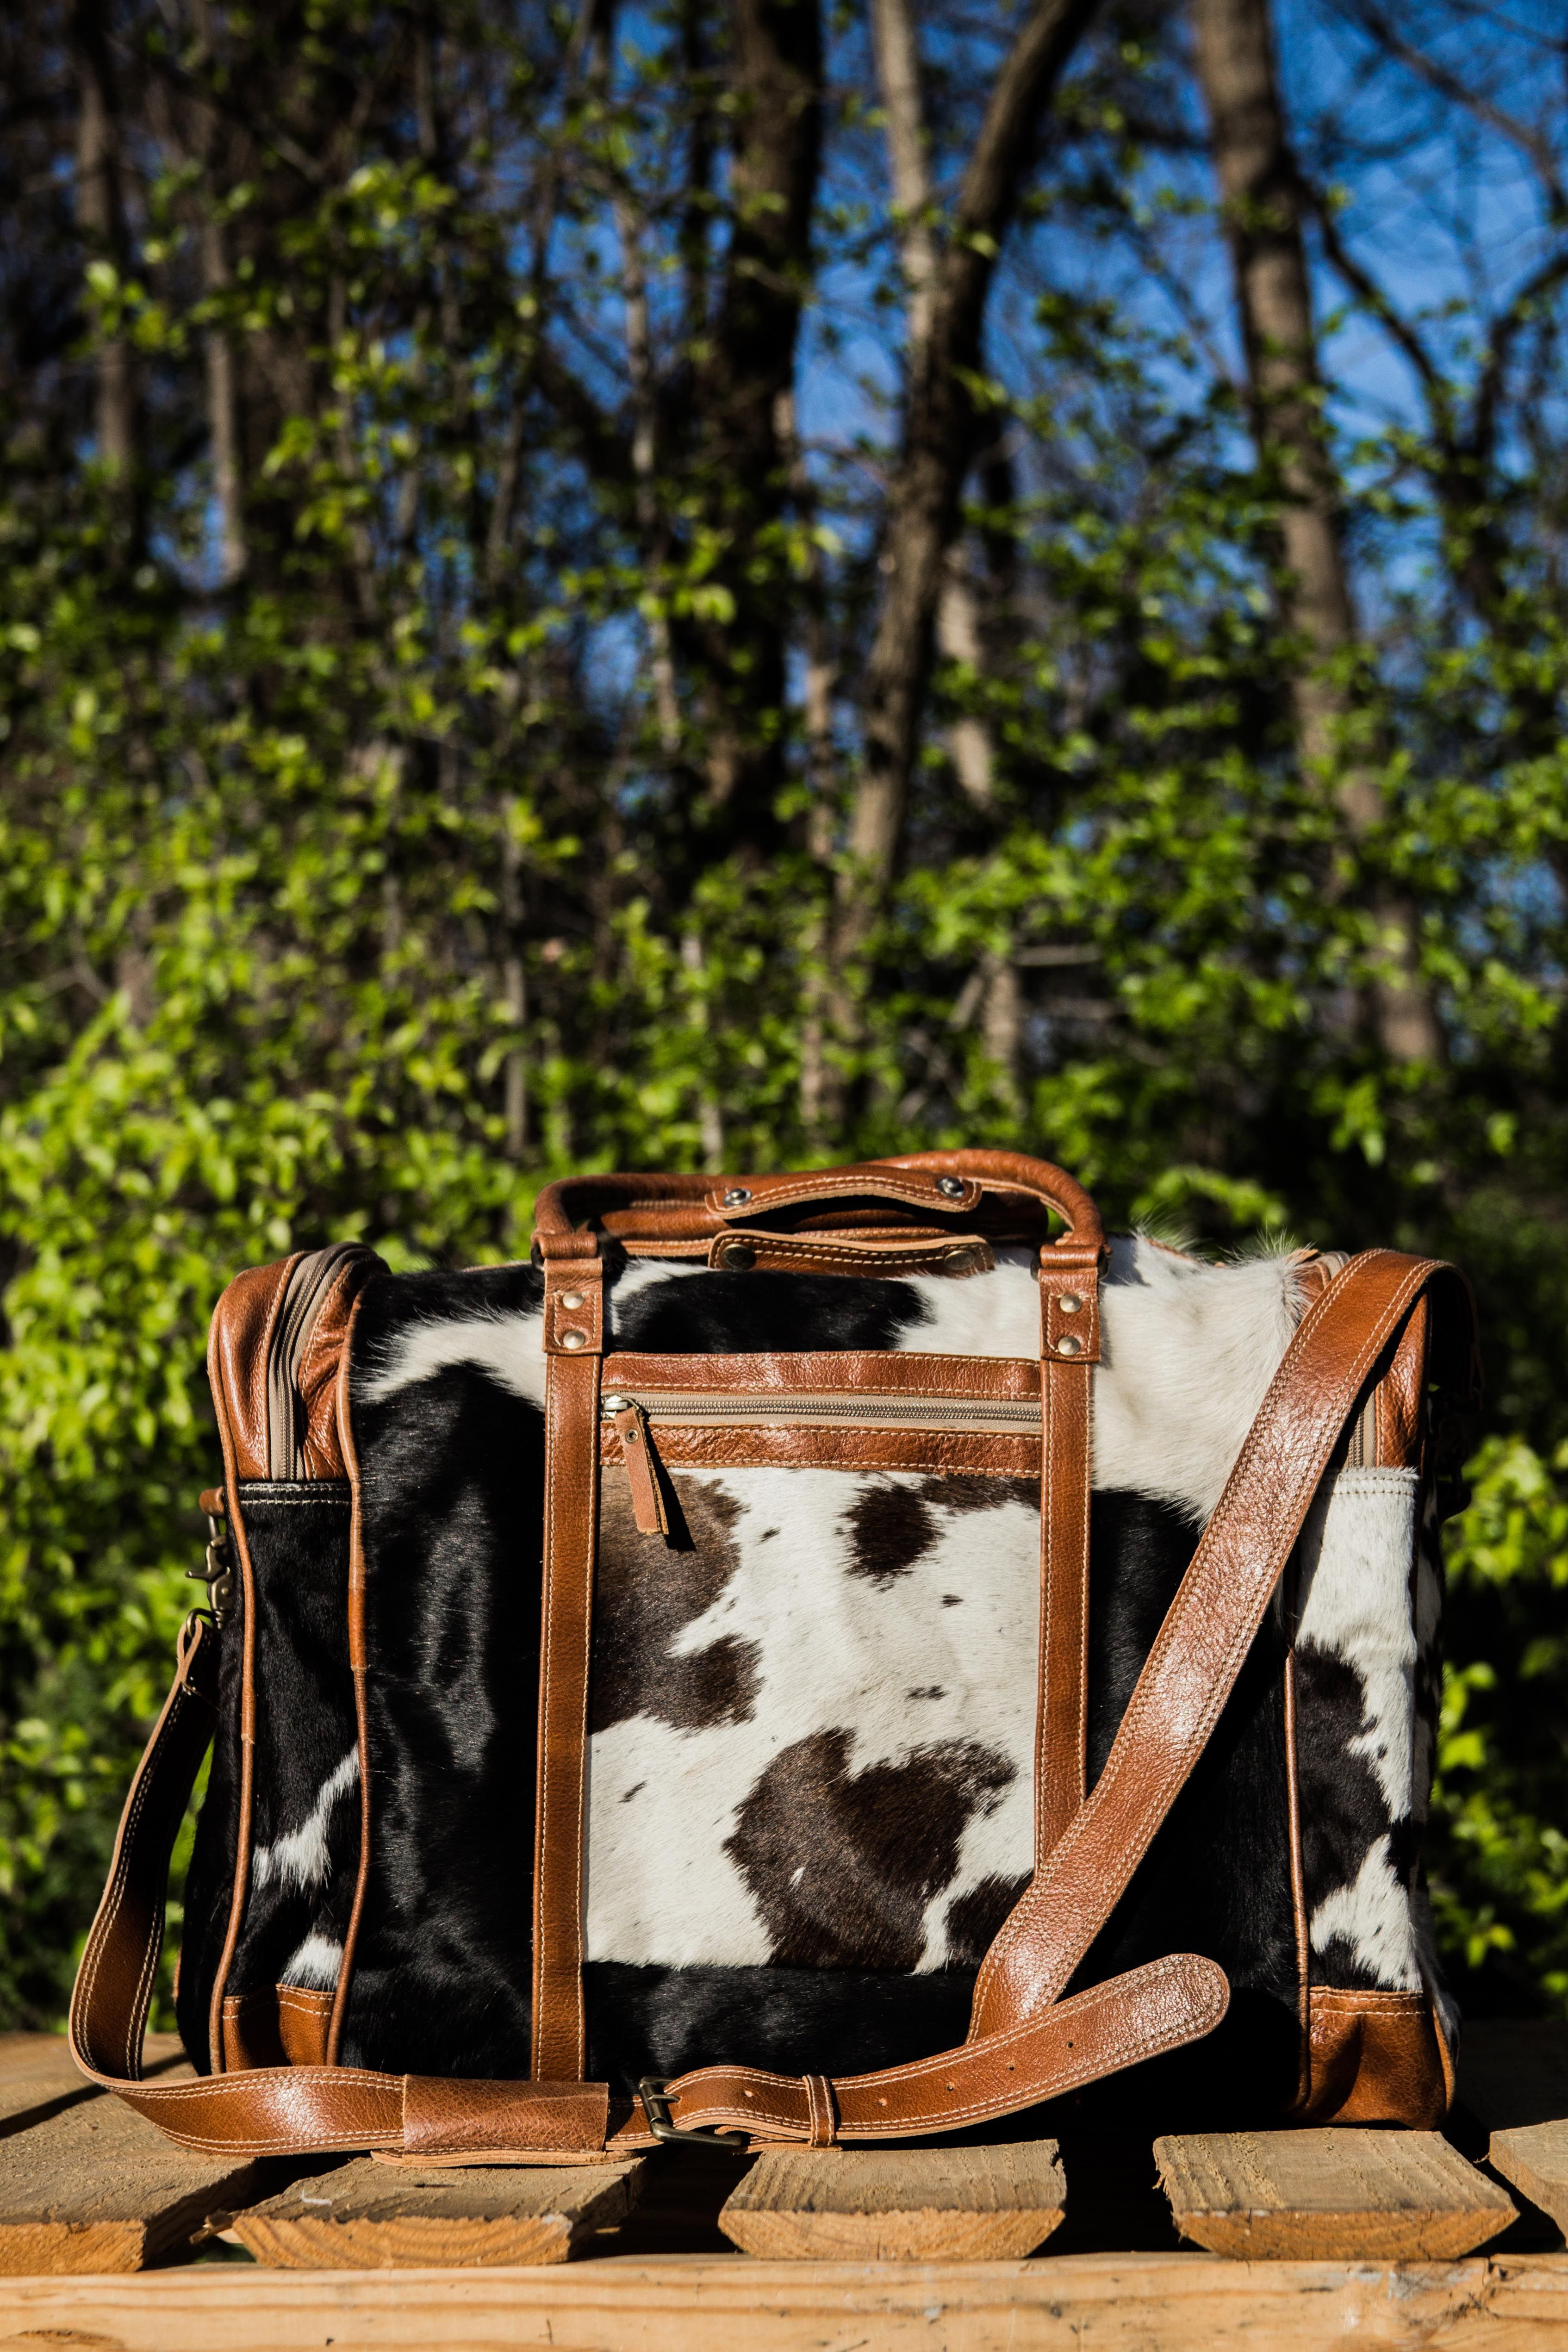 Always Take A Piece Of Your Southern Pride When You Travel This Bag By Myra Is Absolutely Stunning Made Of Authentic Cowhide Cowhide Bag Bags Purses And Bags Myrabag gives cowhide bag, old military tarp and tent bag, unique and fashionably chic bag. pinterest